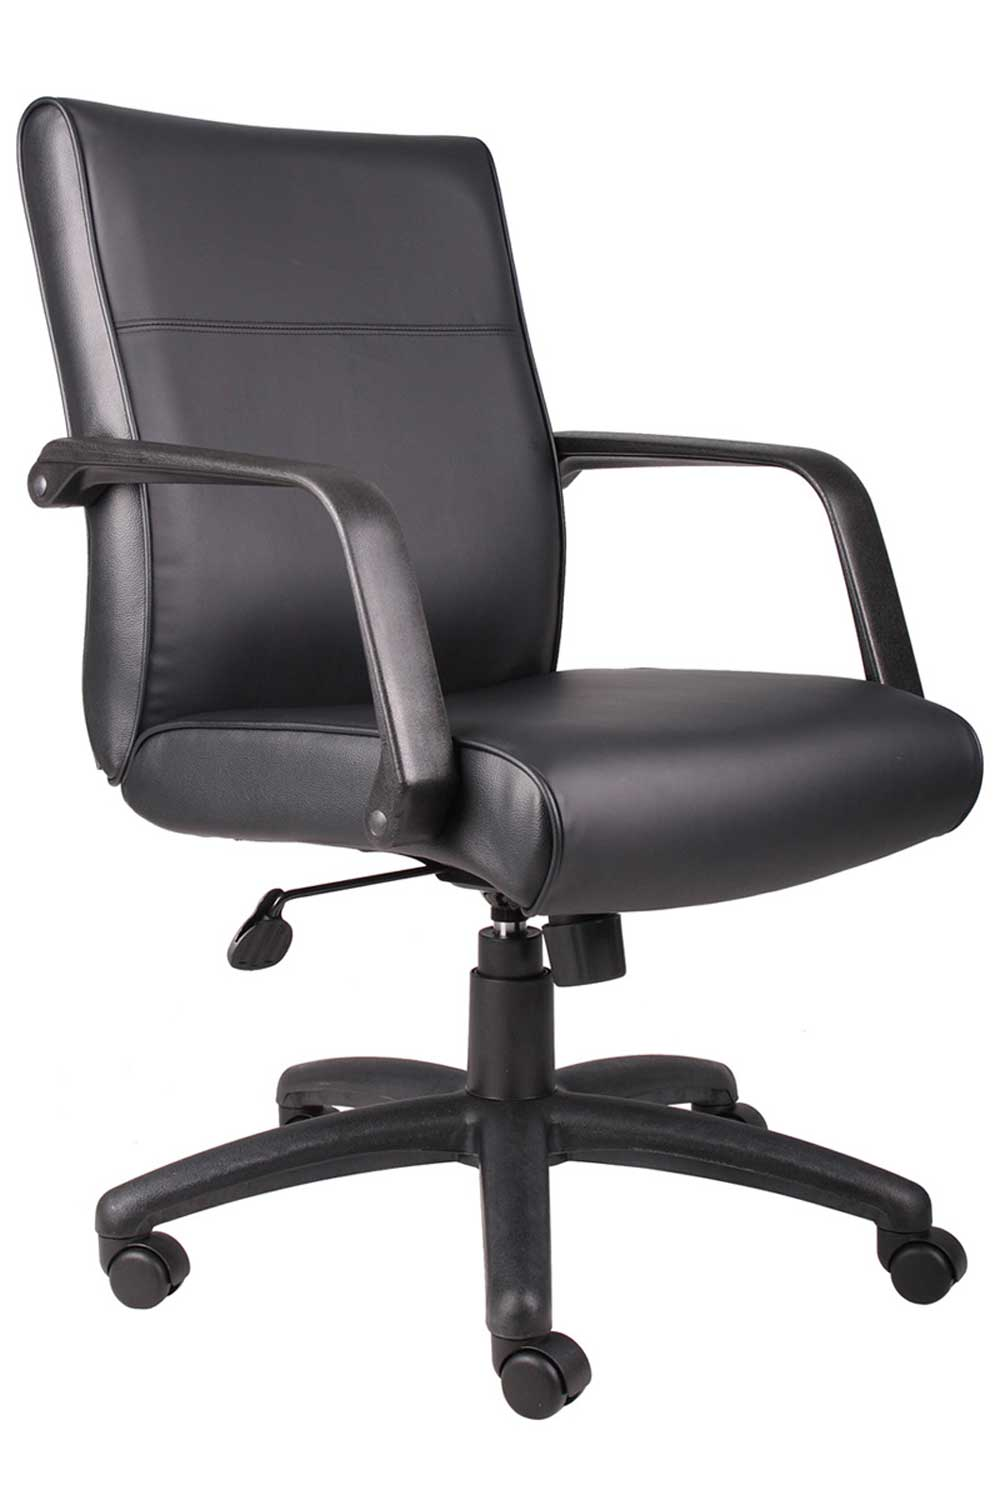 Madison swivel office chair office furniture for Home office chairs leather